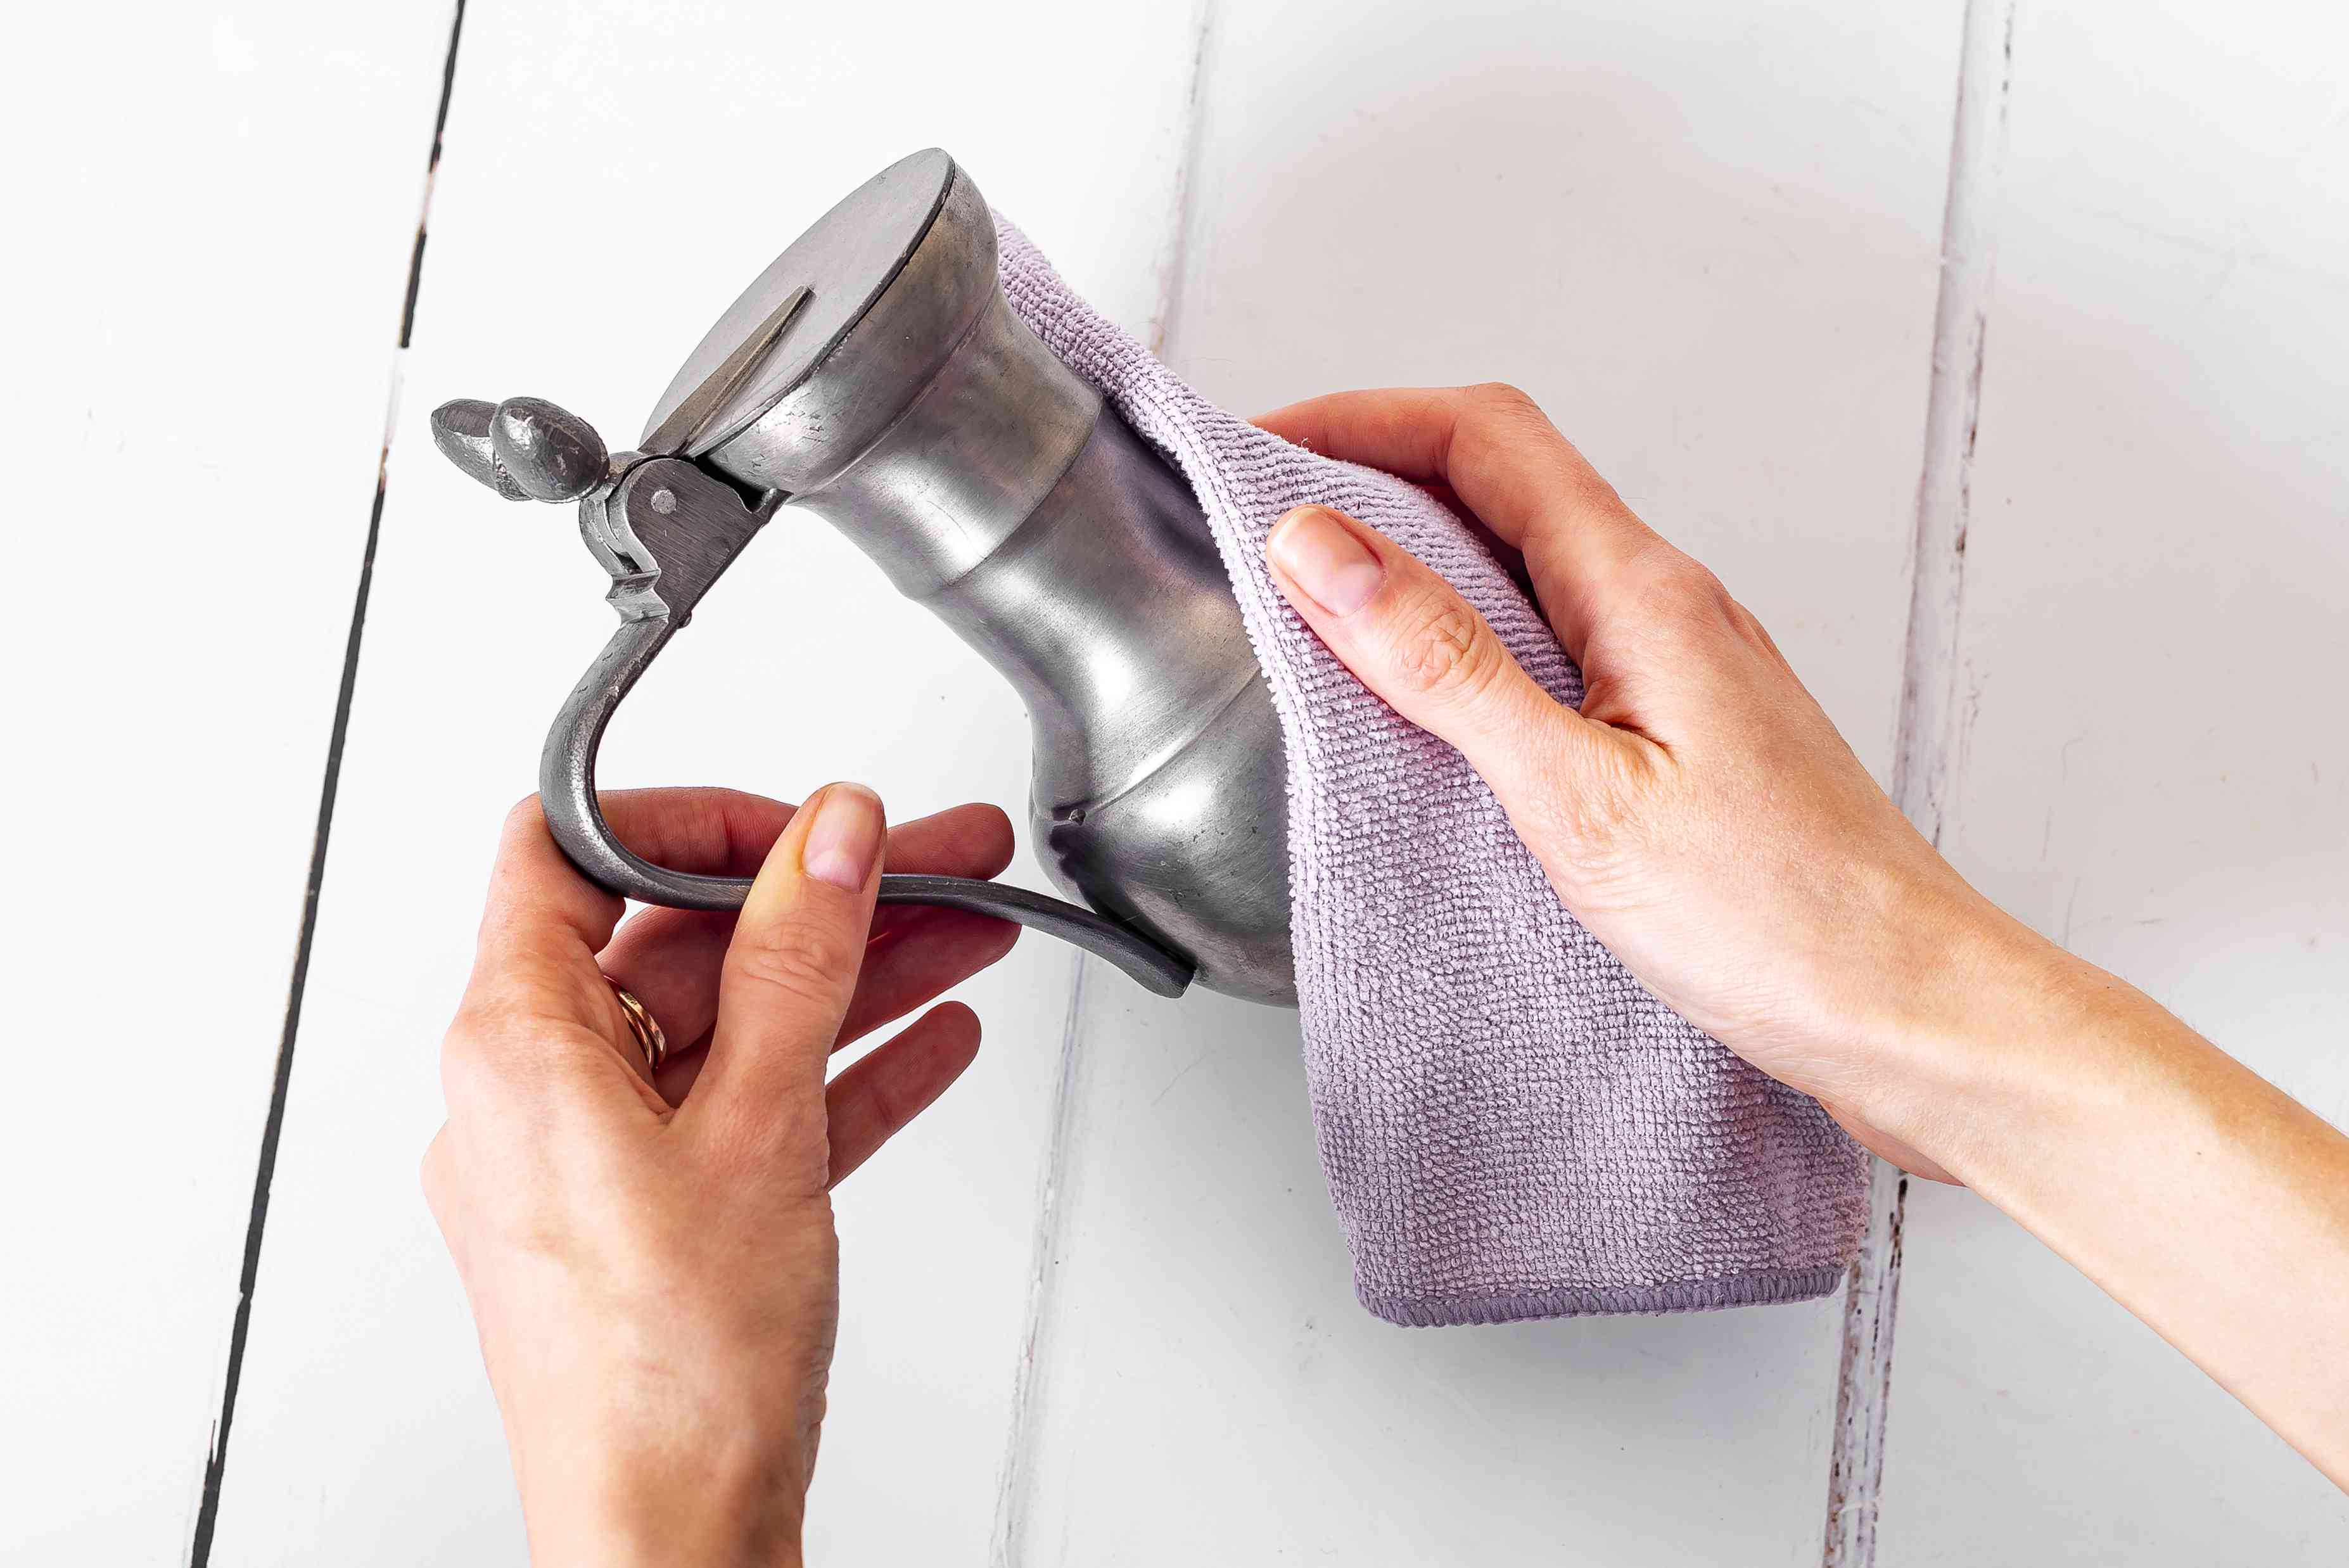 Pewter dispenser dried with purple microfiber cloth